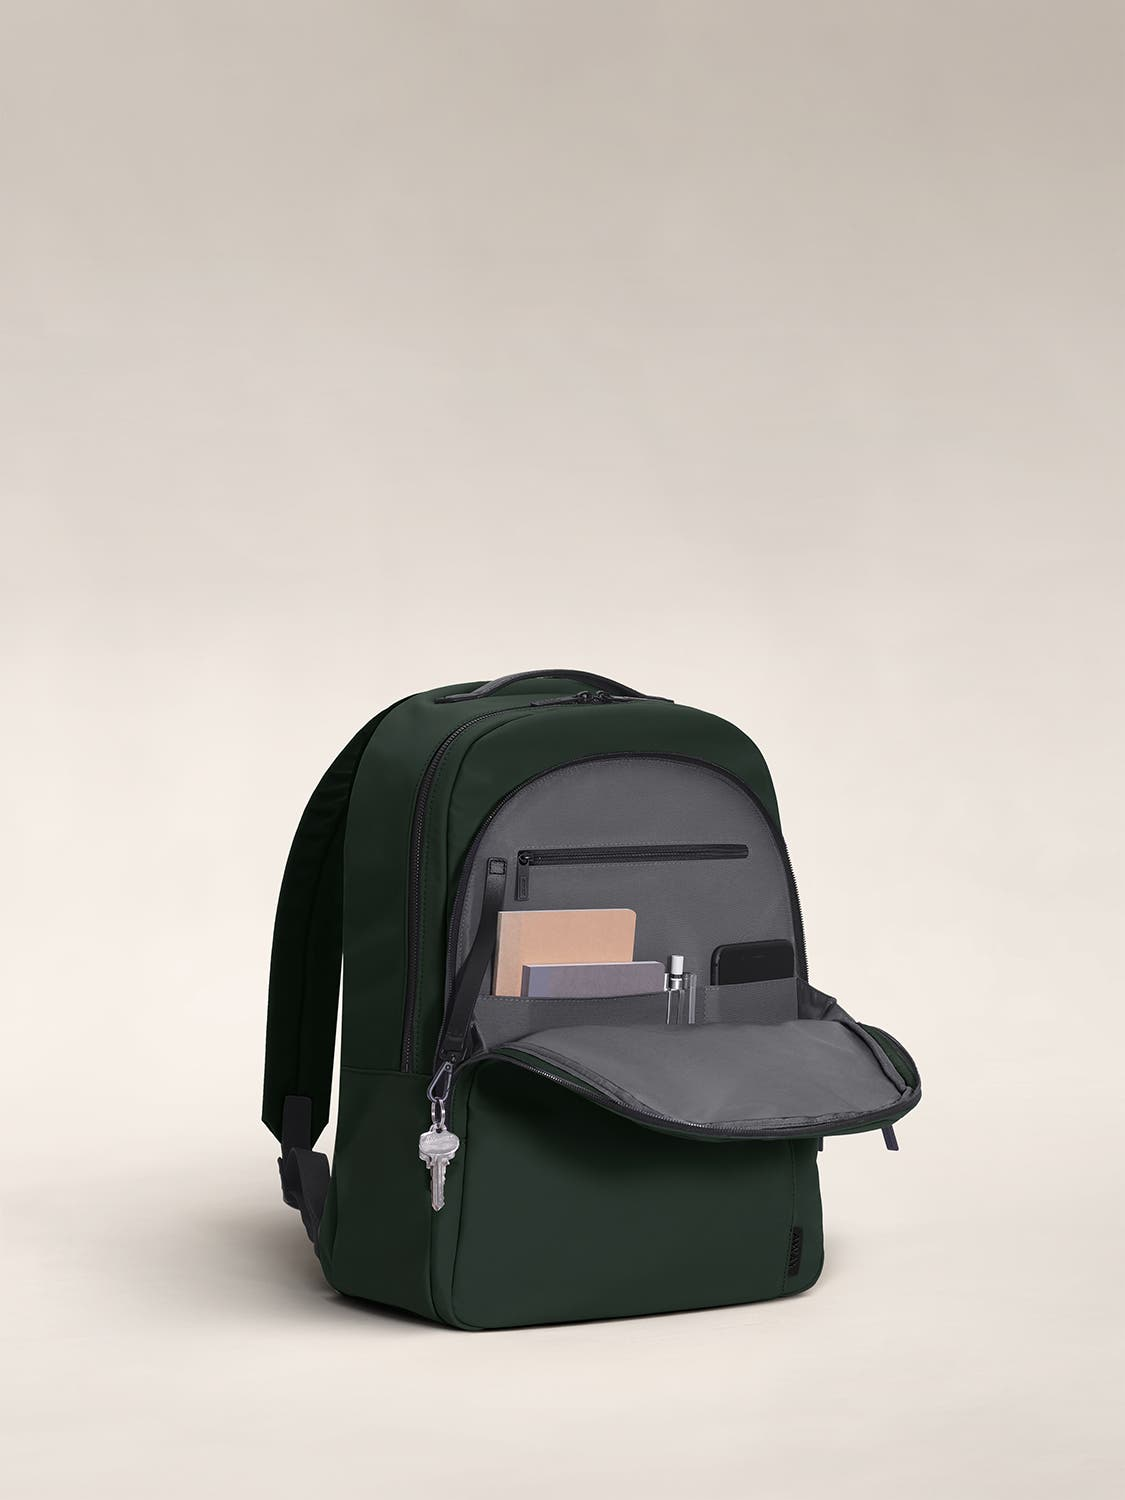 Open front flap of a green backpack with organized pockets shown with notebooks.